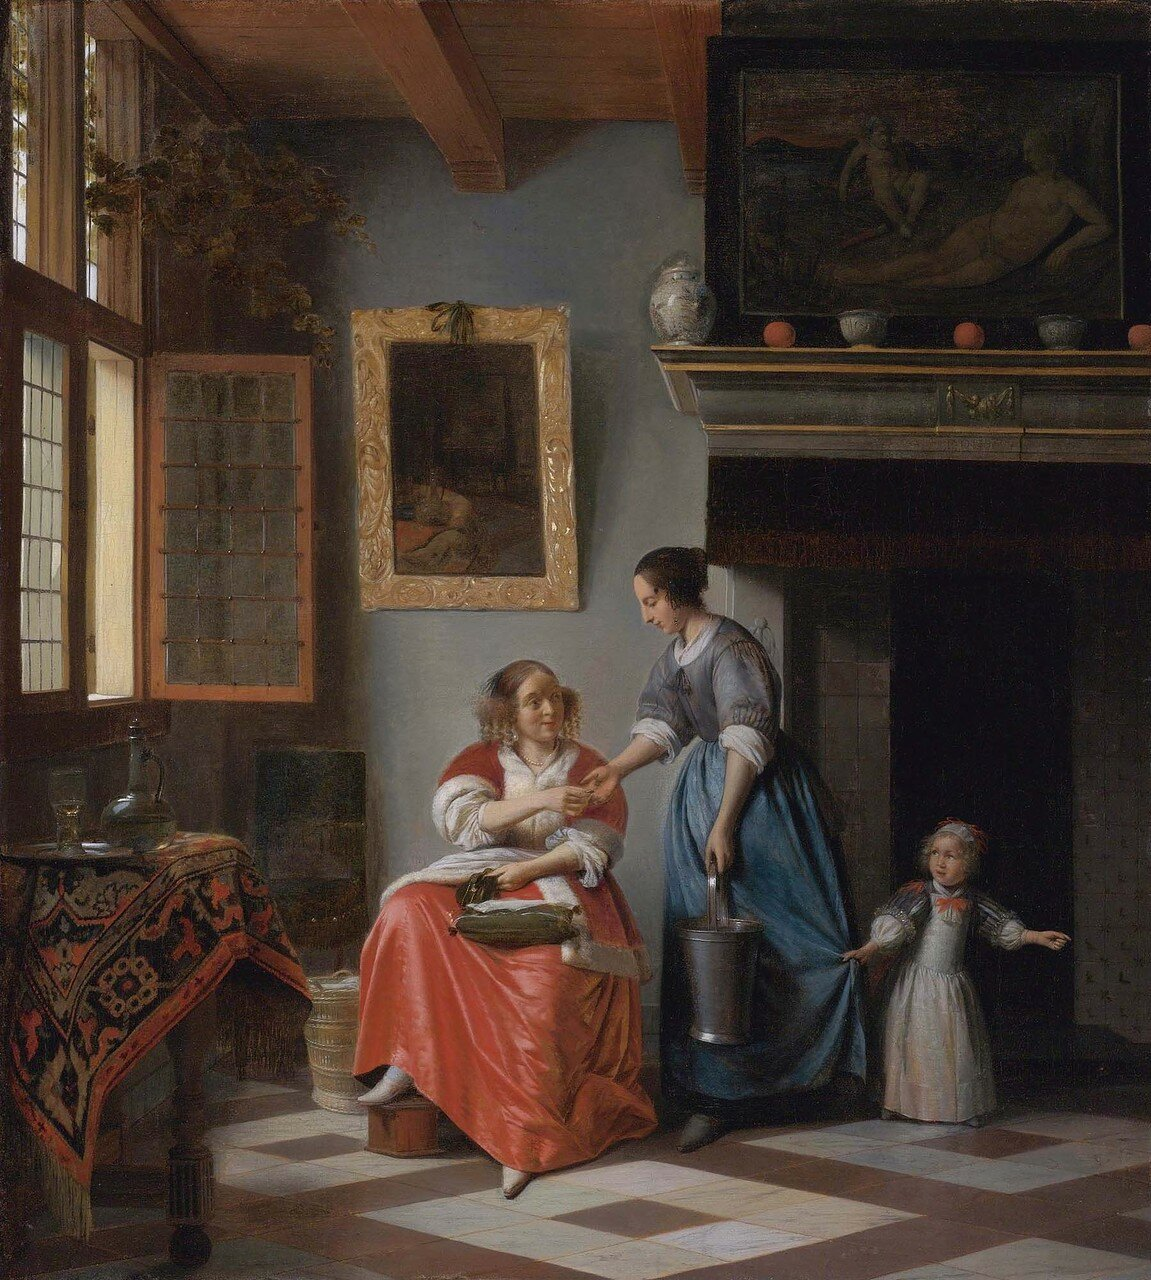 A woman handing a coin to a serving woman with a child, by Pieter de Hooch